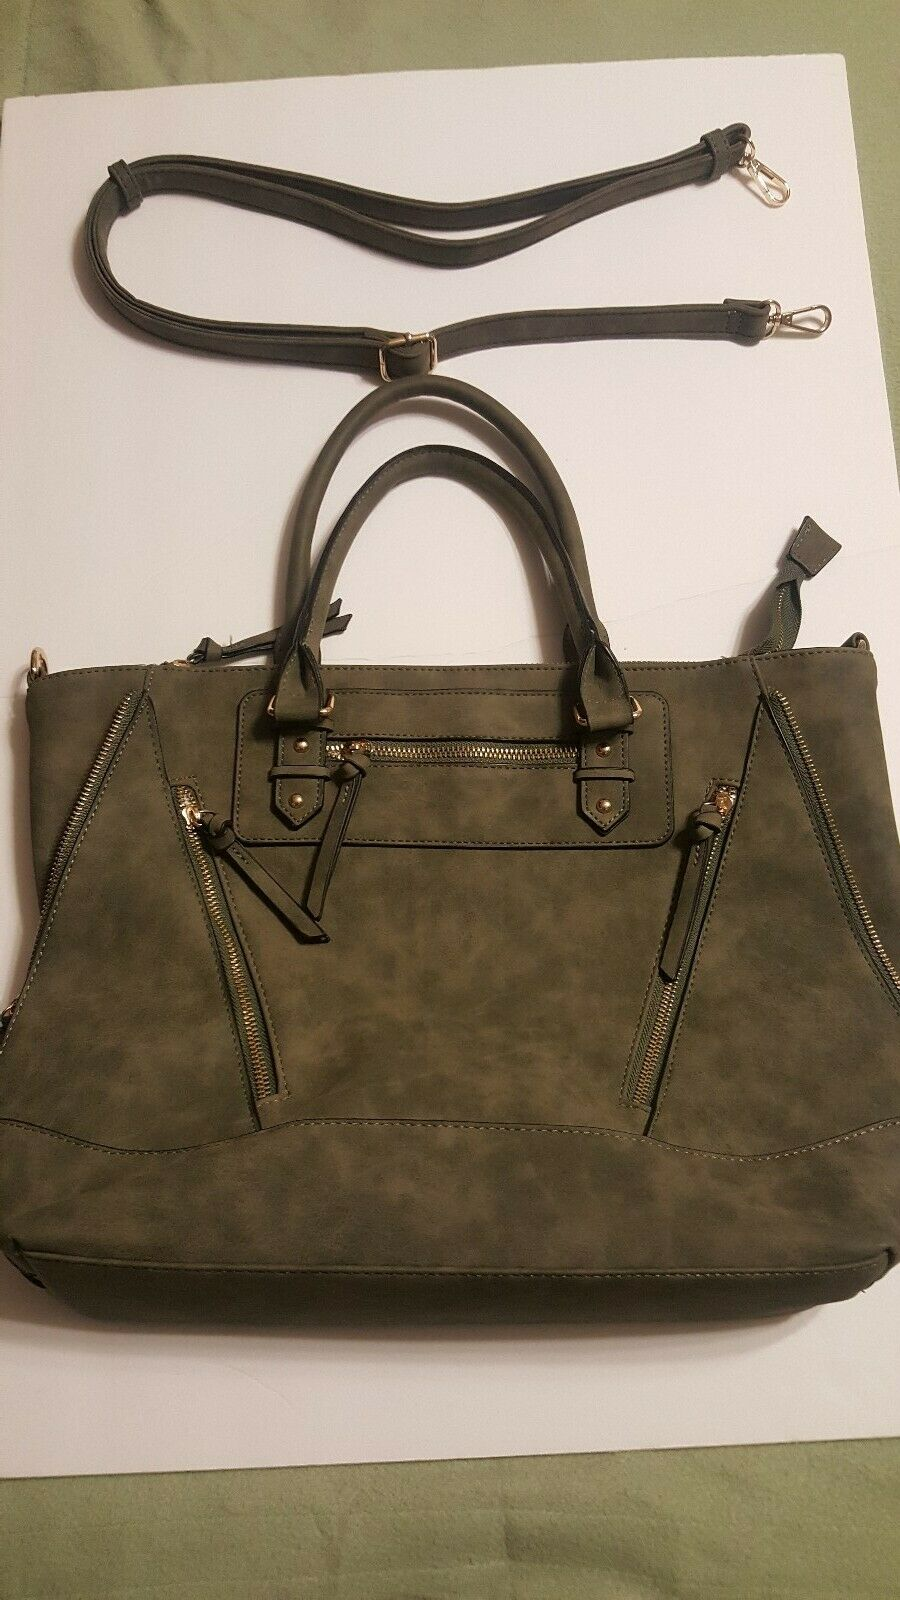 Suede like Hunter Green Spacious Satchel Purse (All weather protected)